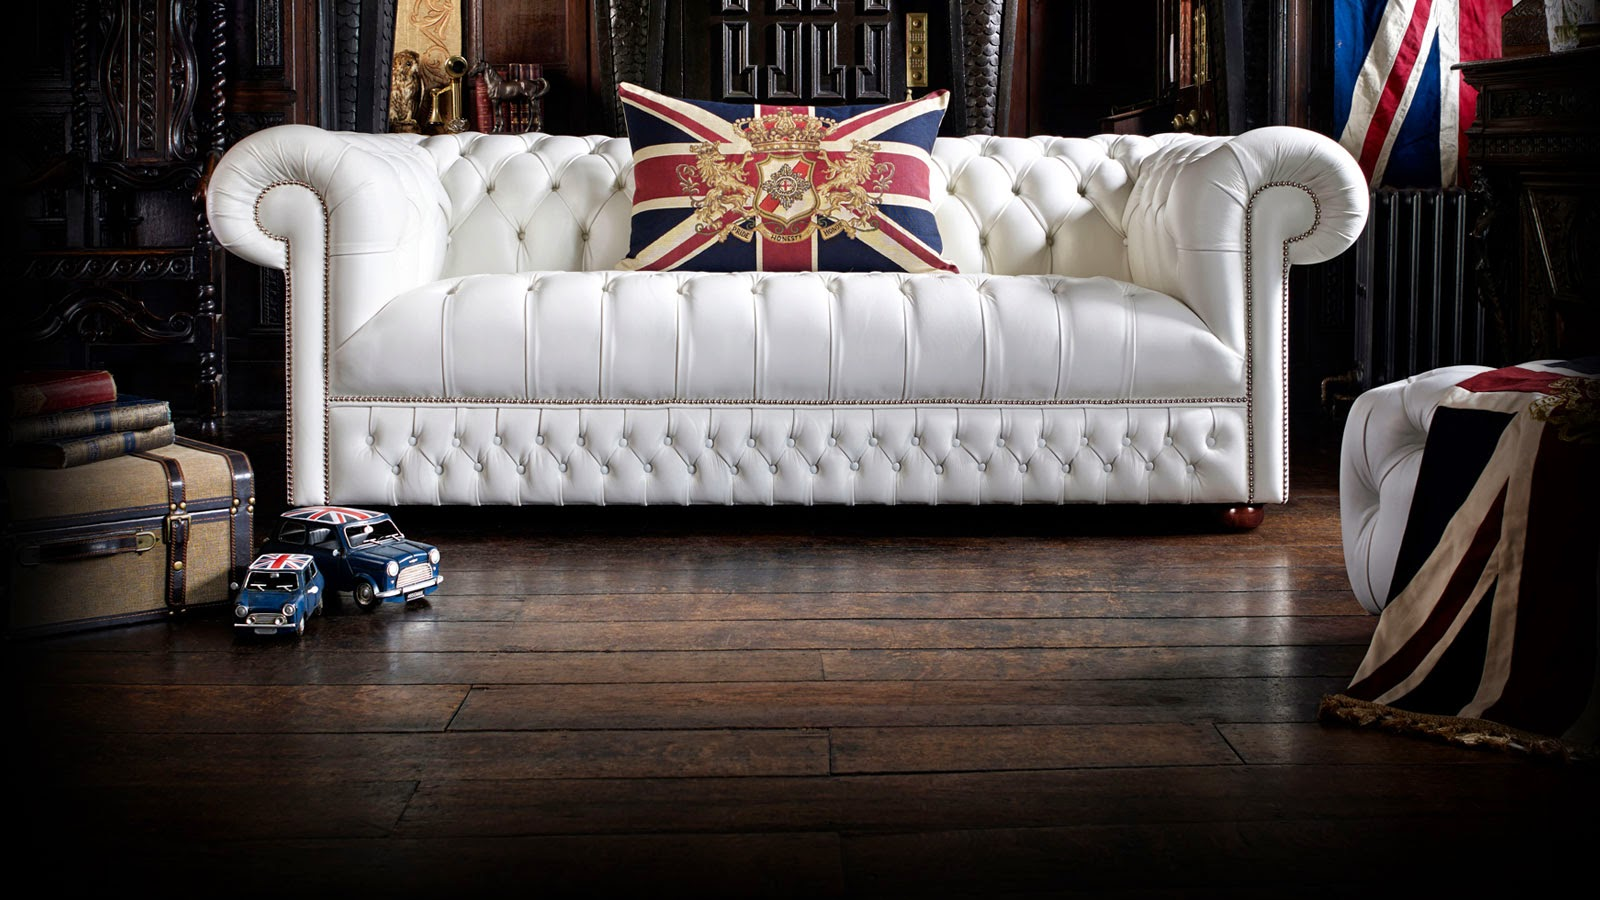 Divani chesterfield originali inglesi the english - Divani originali ...